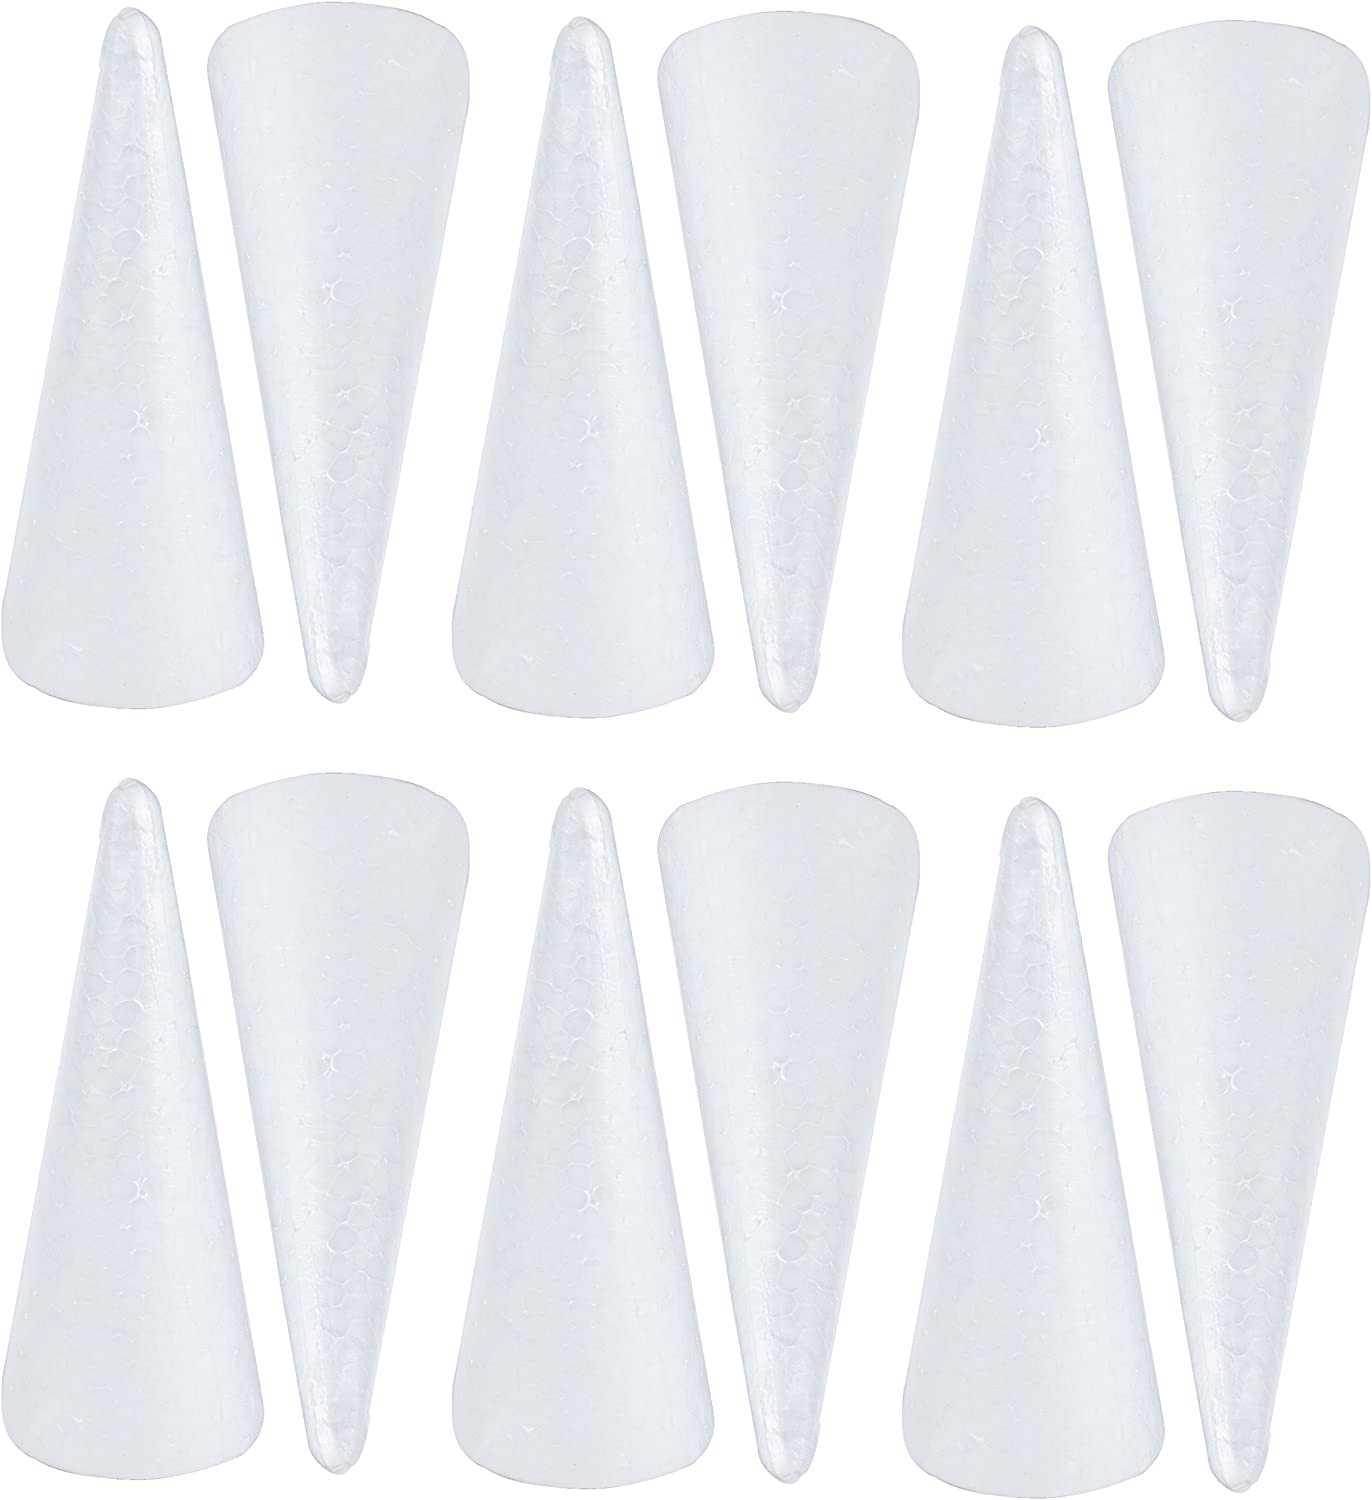 Bright Creations Foam Cones Arts and Crafts Supplies White, 5.25 x 14.5 in, 2 Pack